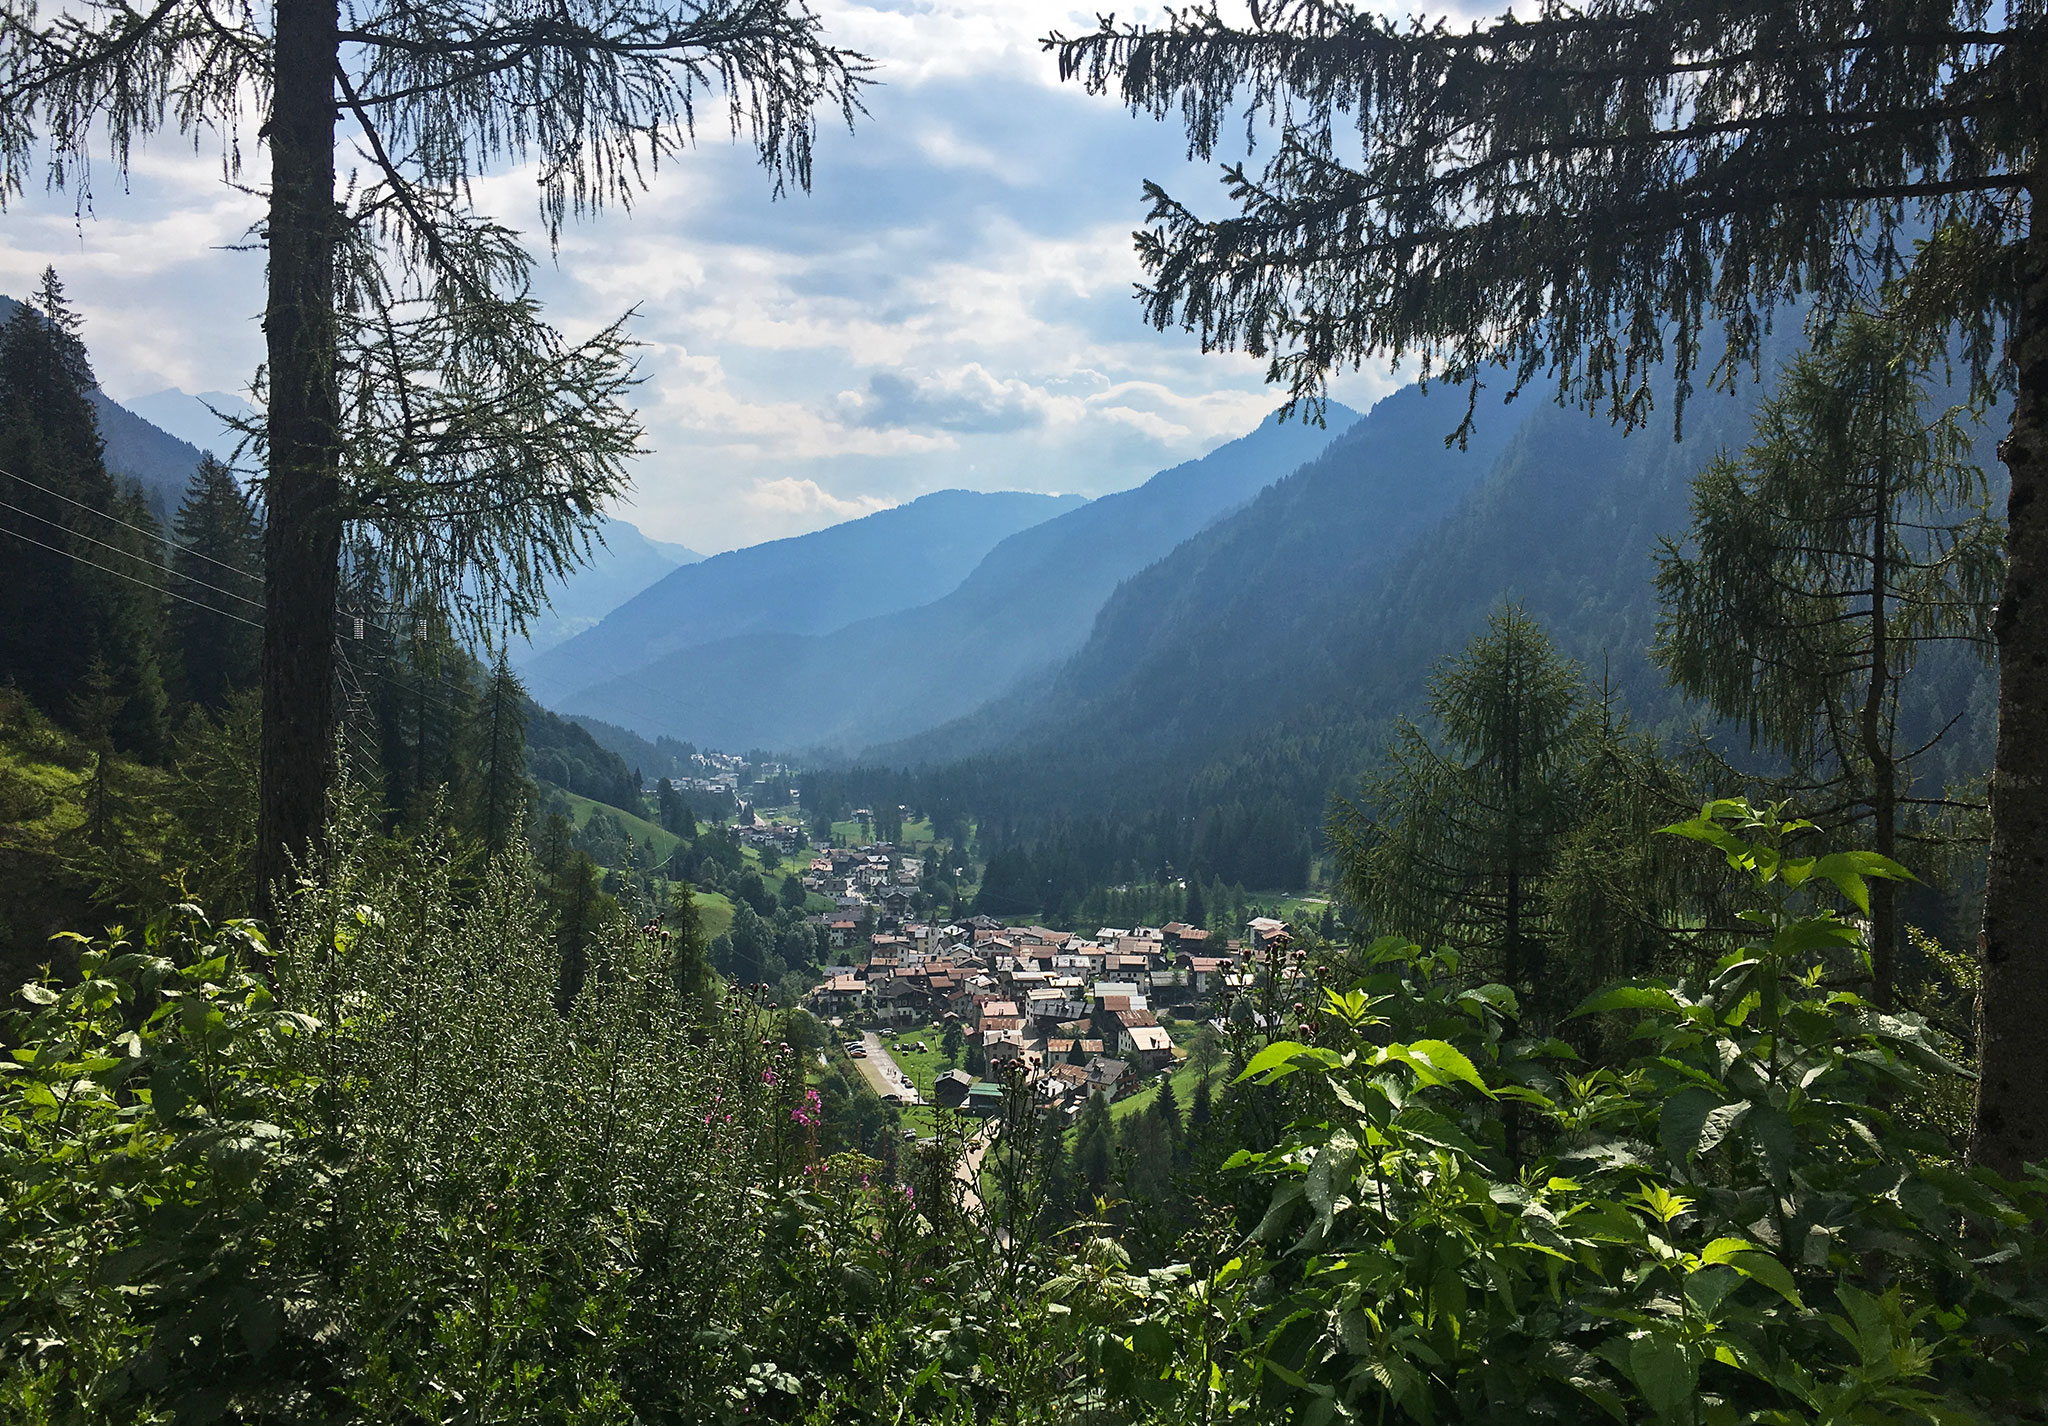 Sottoguda, the valley where i stayed, in the South Tirol region of Belluno